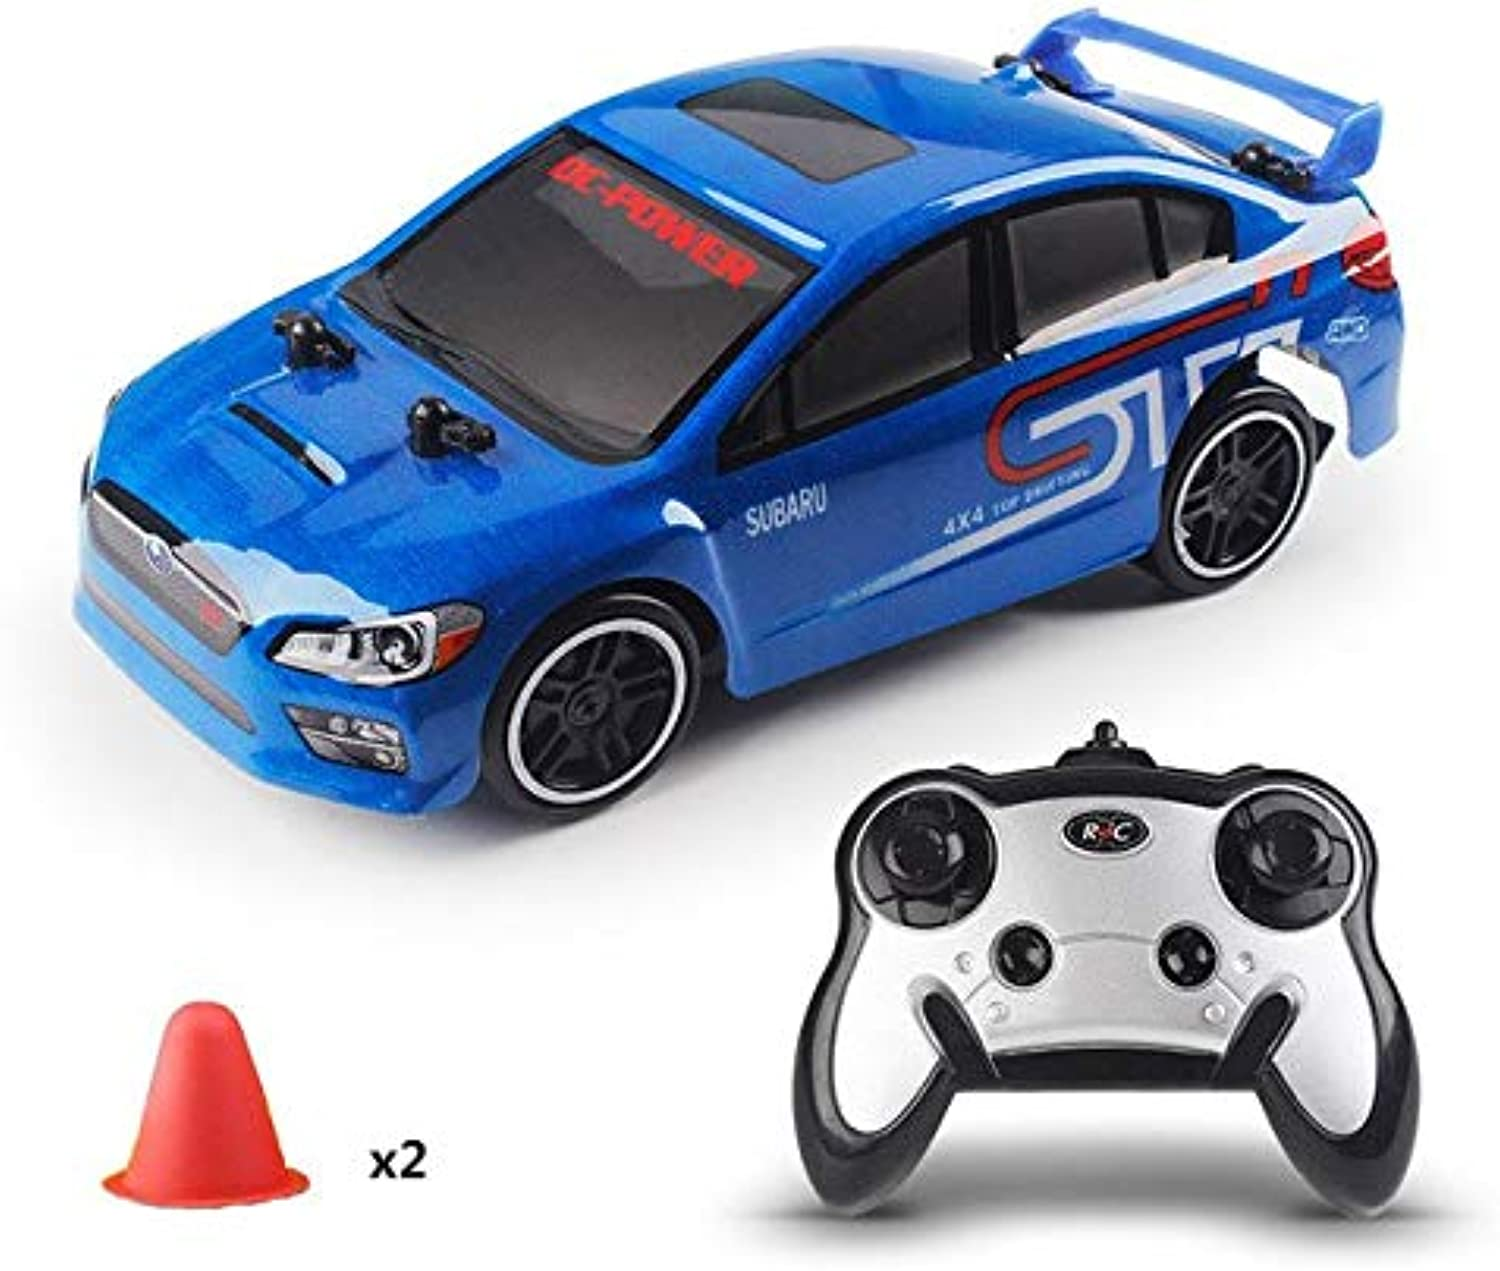 Generic 1 24 2.4G Drift Speed Wireless 4 Channel Remote Control Racing Car 30KM H High Speed 4WD Drift Racing Car Truck Toy Gift bluee